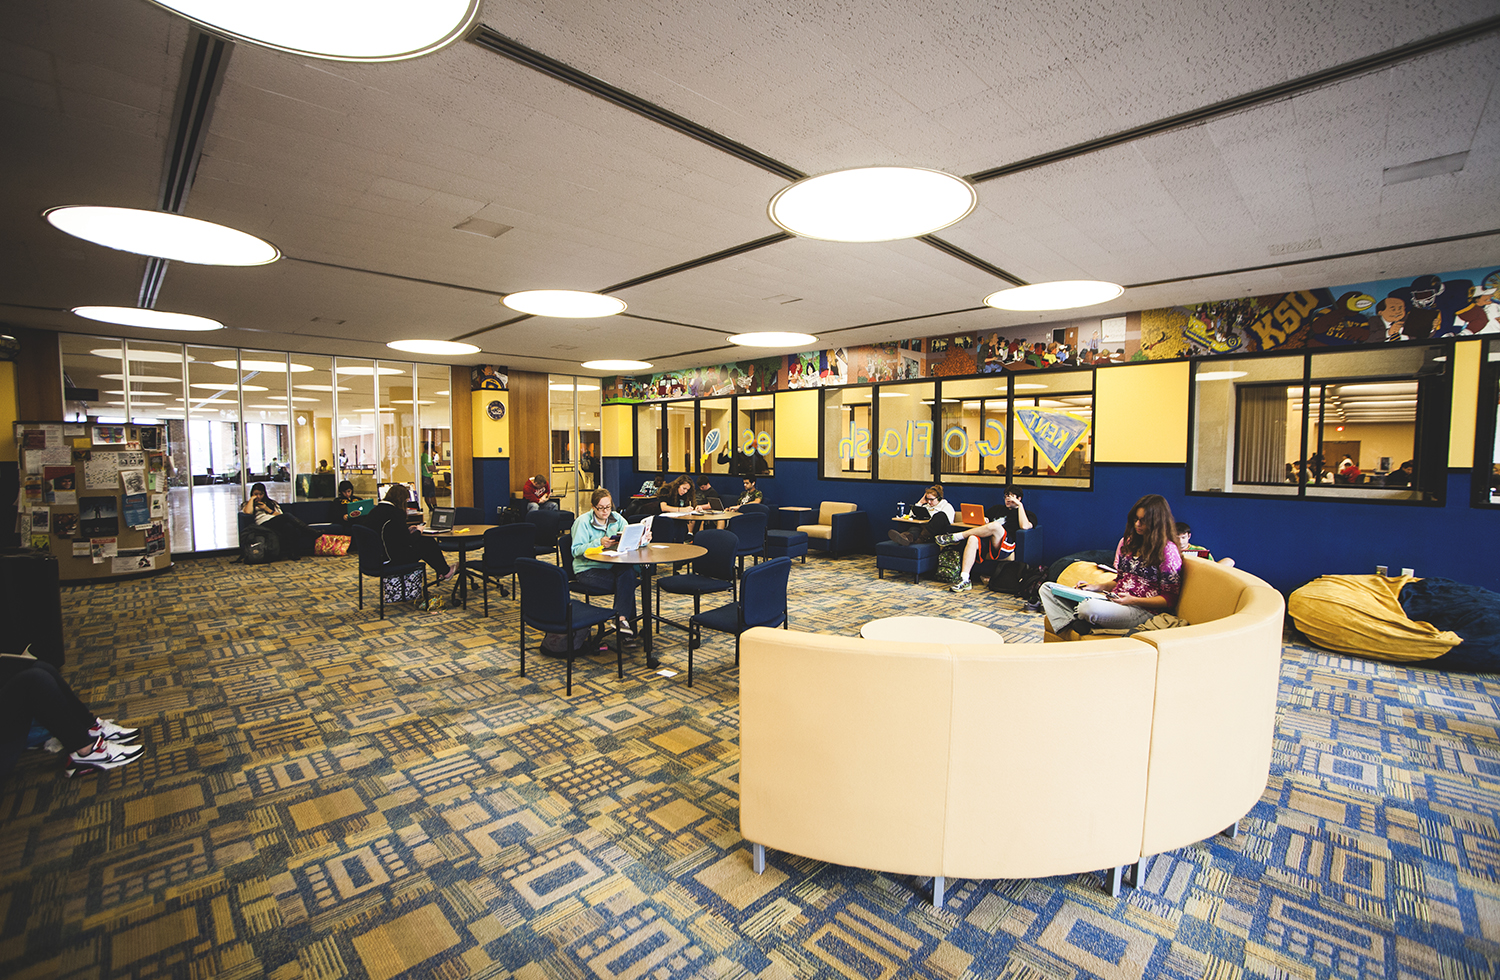 The Nest in the Kent Student Center. Learn more about Public Spaces.